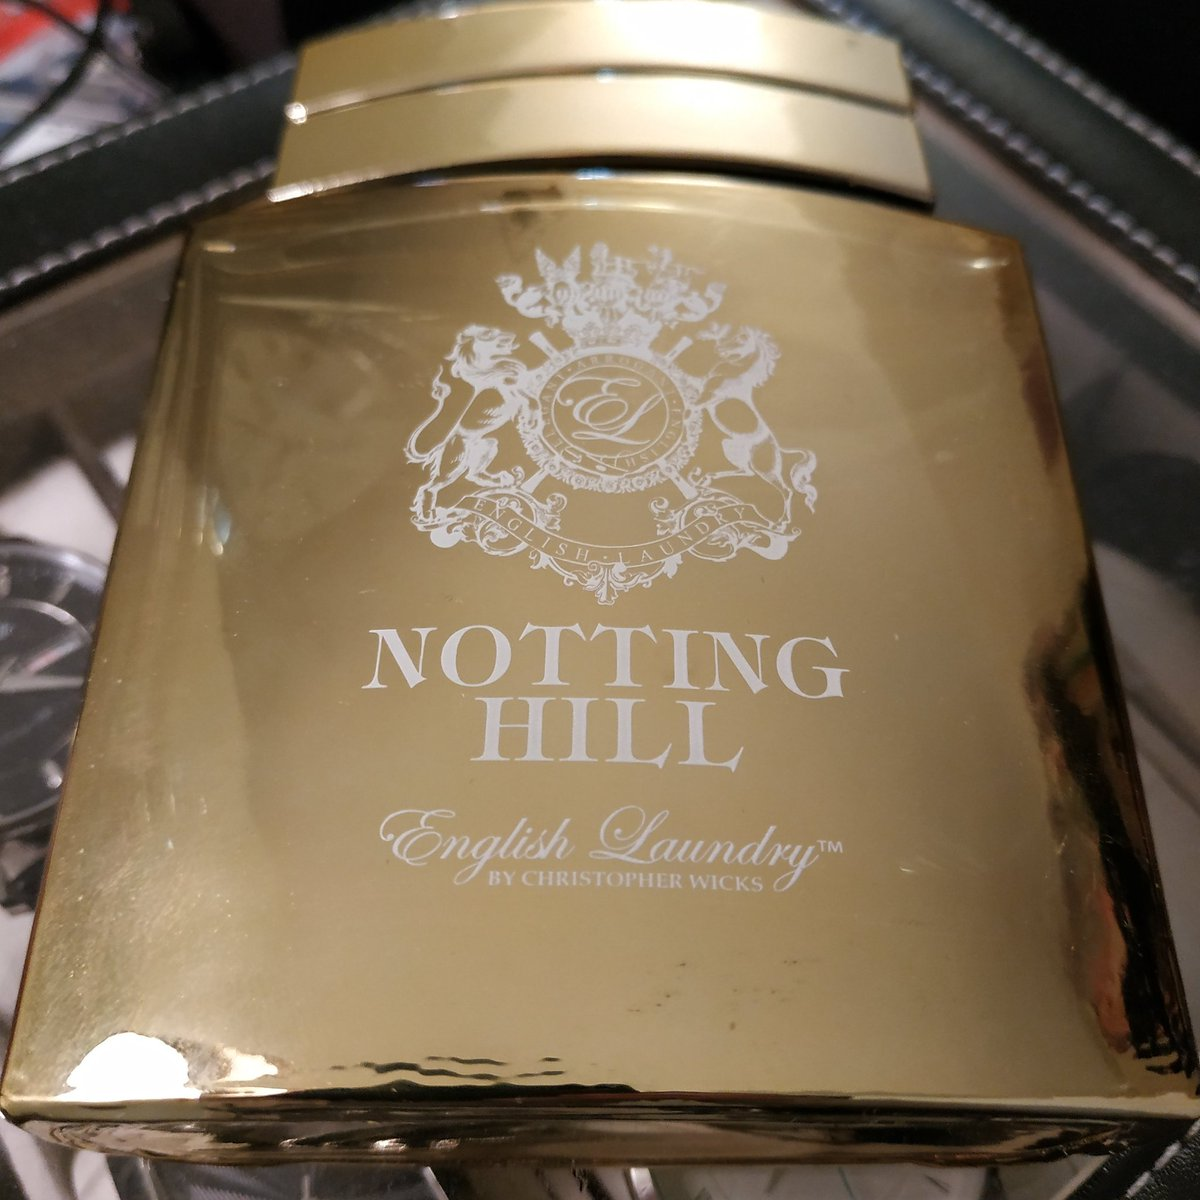 Scent of the day: Notting Hill by @elfragrances #style #instagood #dapper #accessories #fashionblog #men #guyswithstyle #cologne #designer #designerfragrance #fragrances #blackmenstyle #blackmenwithstyle #sartorialandgeek #sartorialist